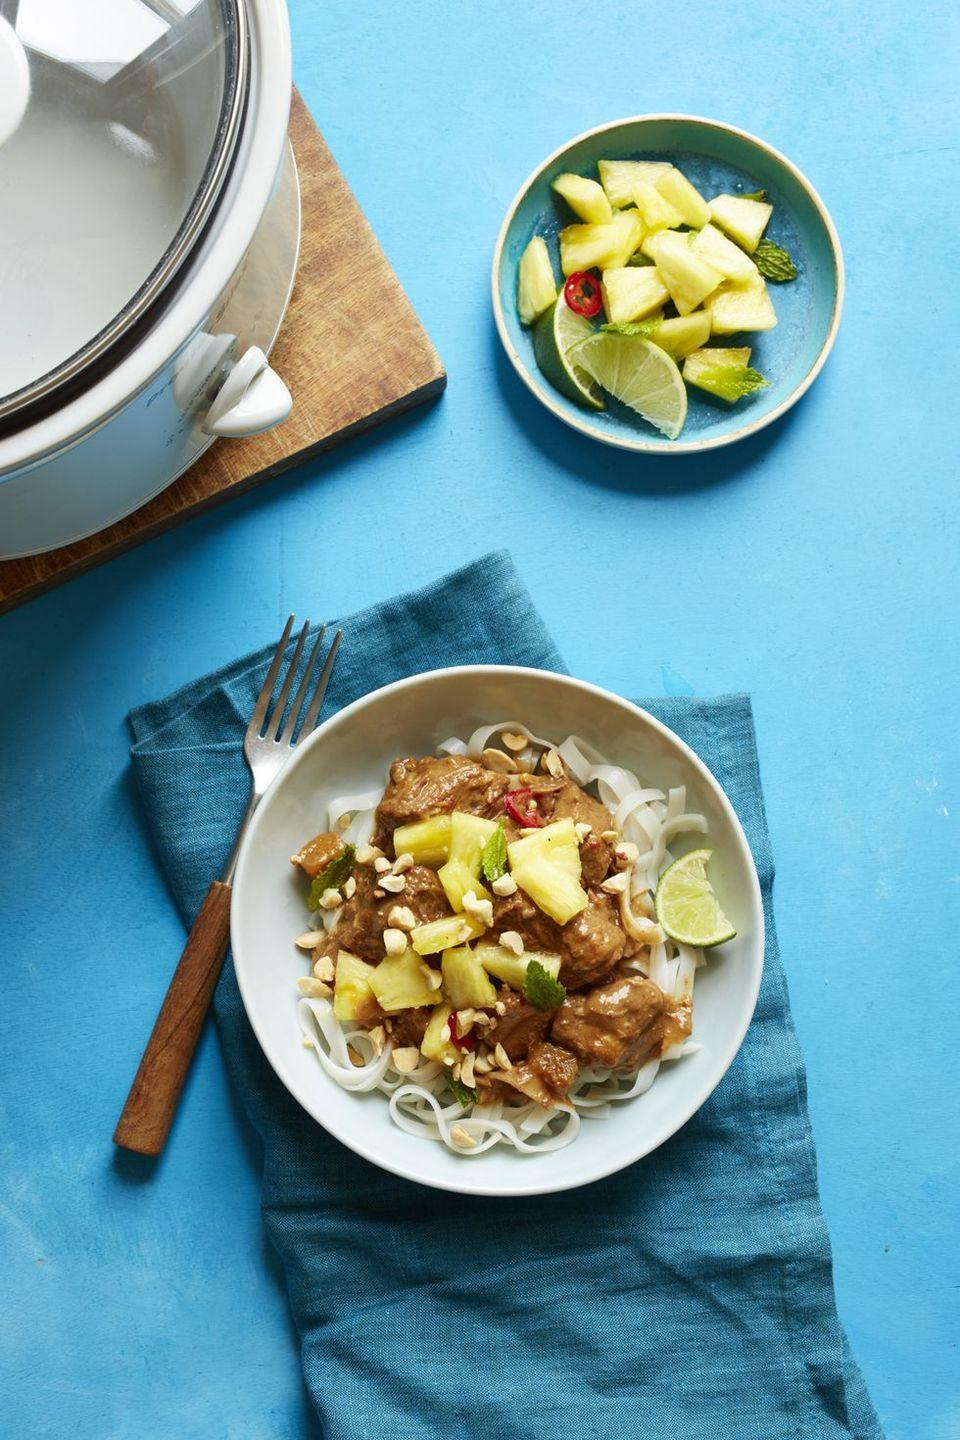 """<p>Thai-take out fans: You can rest your wallet and save some cash with this recipe. It may even be a healthier option if you make sure to grab the peanut butter without extra sugar and use coconut milk that doesn't have any harmful additives.</p><p><em><a href=""""https://www.womansday.com/food-recipes/food-drinks/recipes/a55755/thai-style-pork-with-rice-noodles-recipe/"""" rel=""""nofollow noopener"""" target=""""_blank"""" data-ylk=""""slk:Get the recipe from Woman's Day »"""" class=""""link rapid-noclick-resp"""">Get the recipe from Woman's Day »</a></em></p>"""